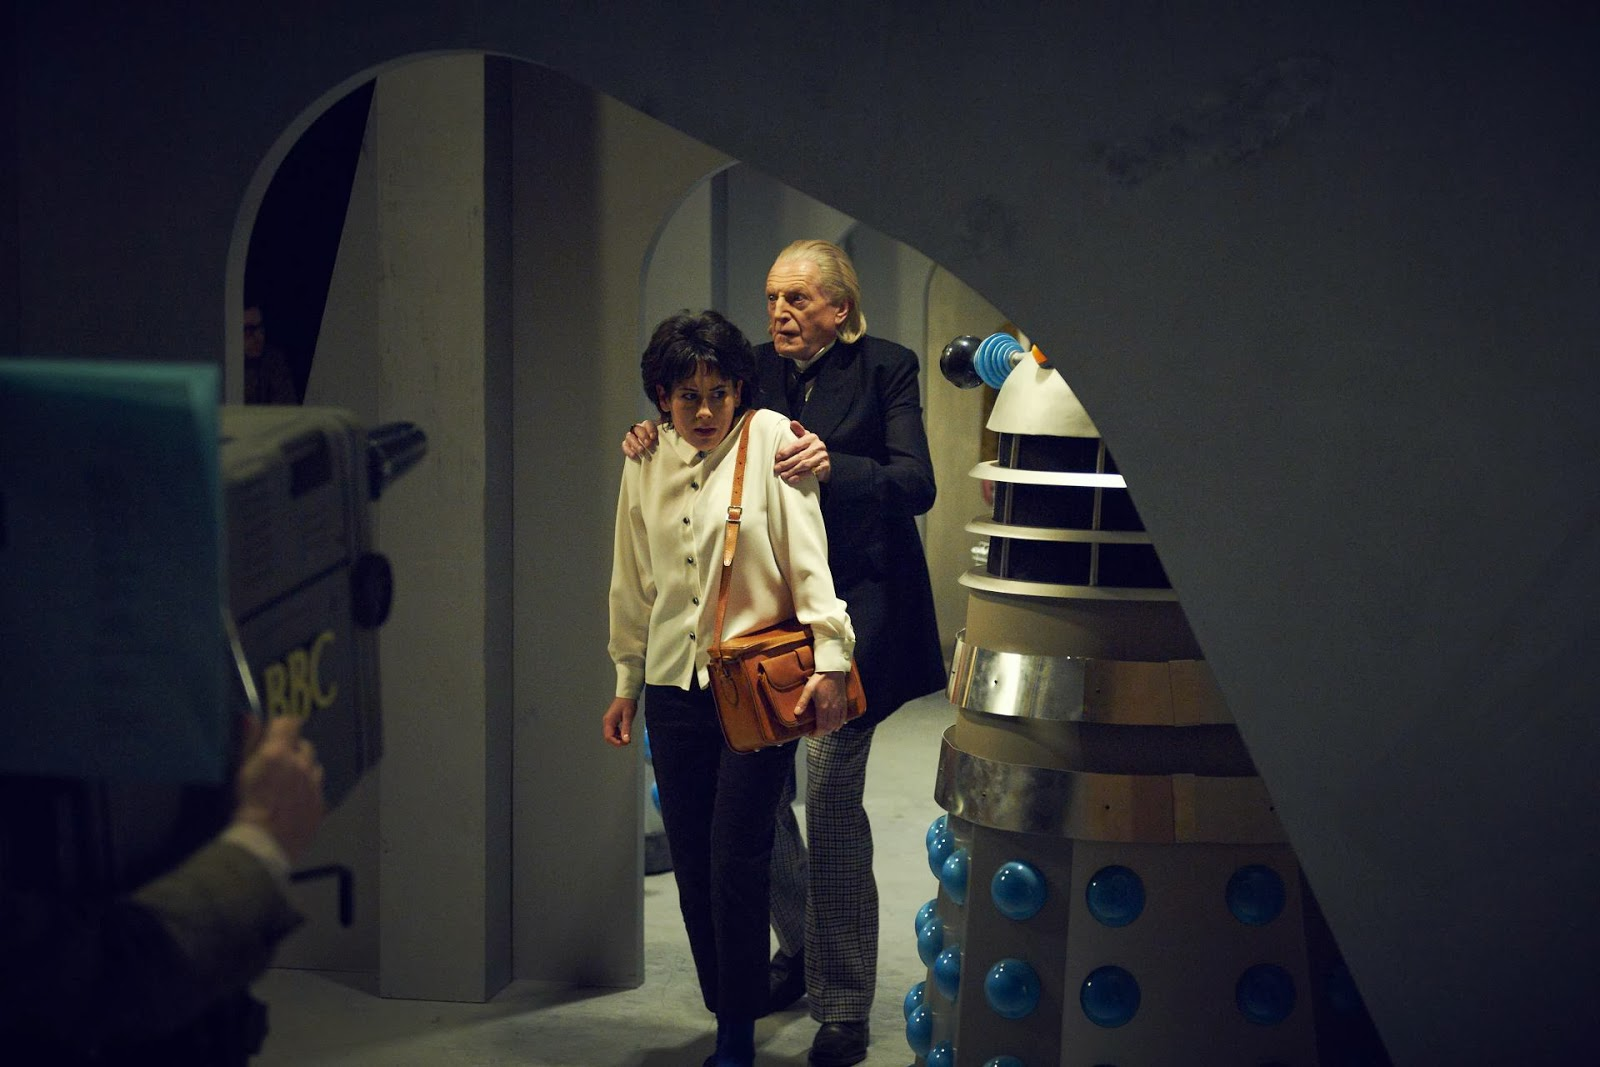 William Hartnell (David Bradley) and Carole Ann Ford (Claudia Grant) with the Daleks in An Adventure in Space and Time (2013)